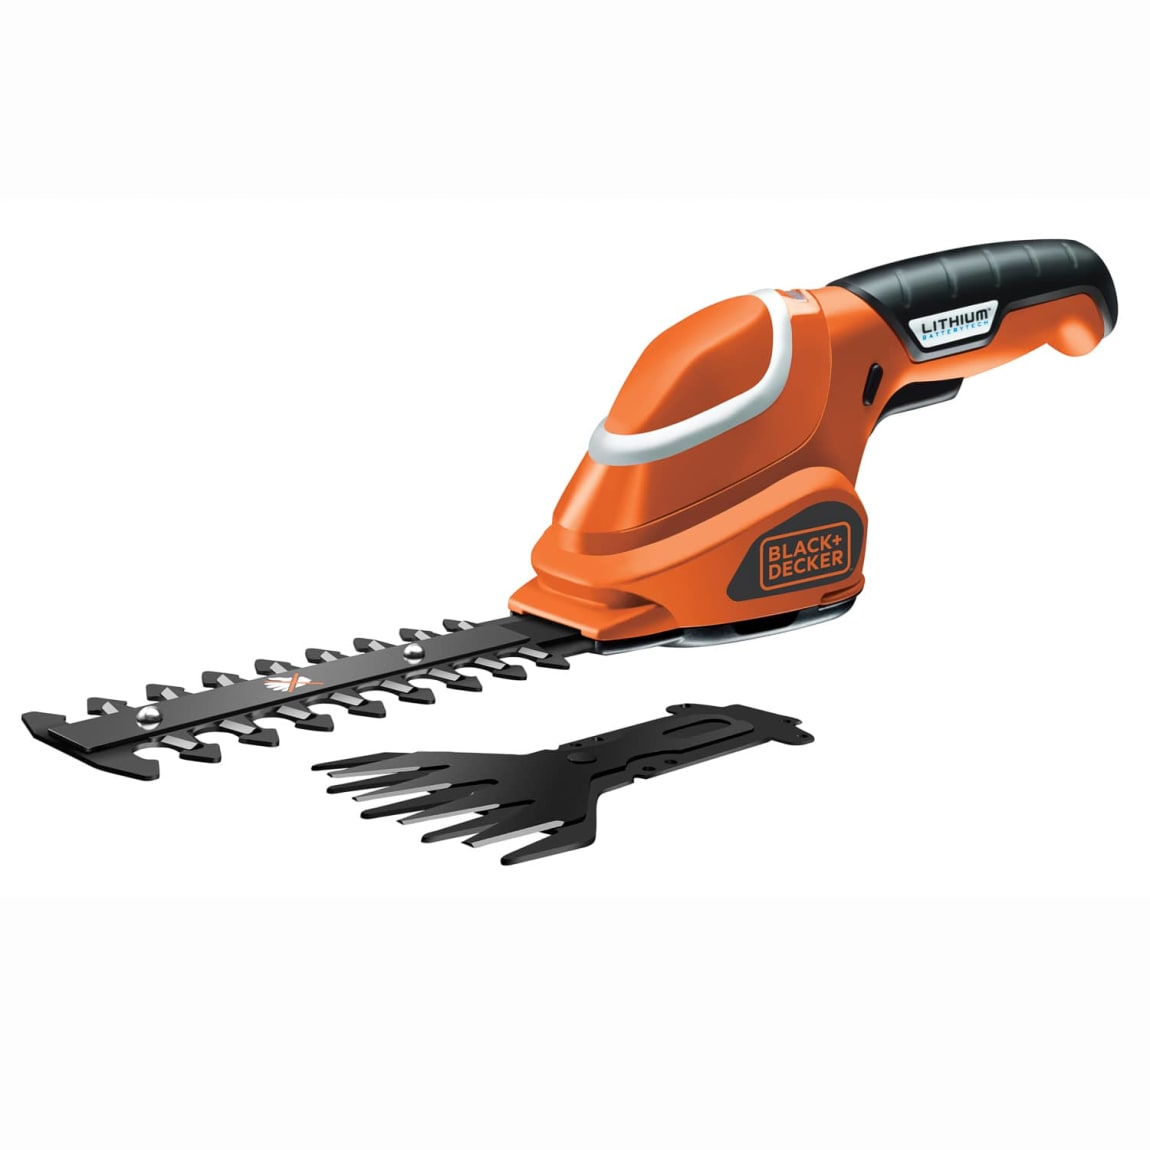 Black & Decker Shrub Shearer